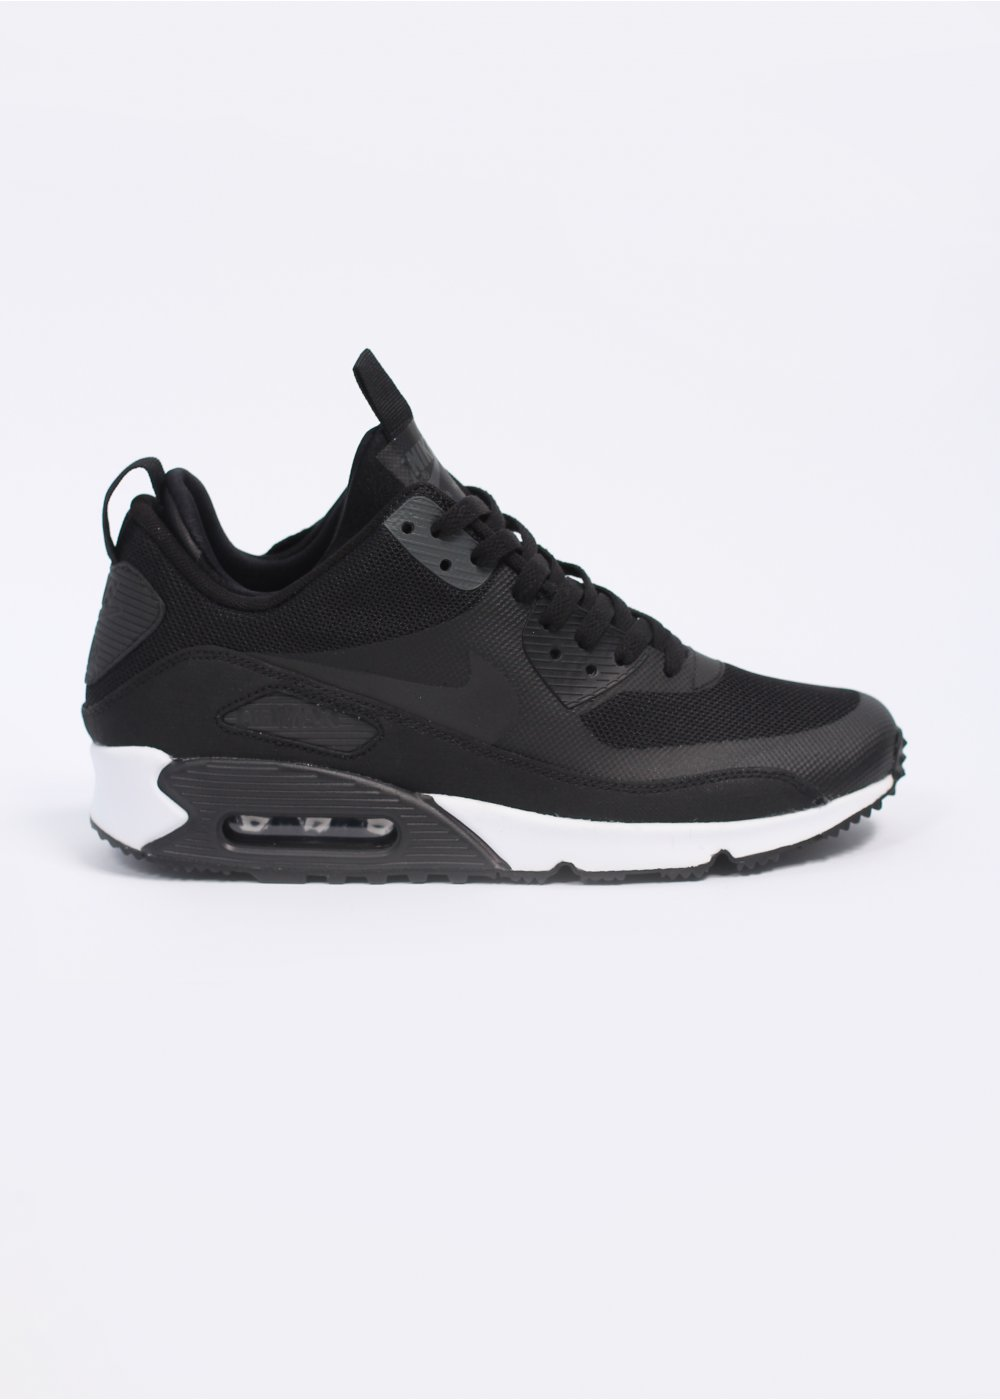 detailed look 85e04 228a7 Air Max 90 Mid Sneaker Boot Trainers - Black  Black  Dark Charcoal